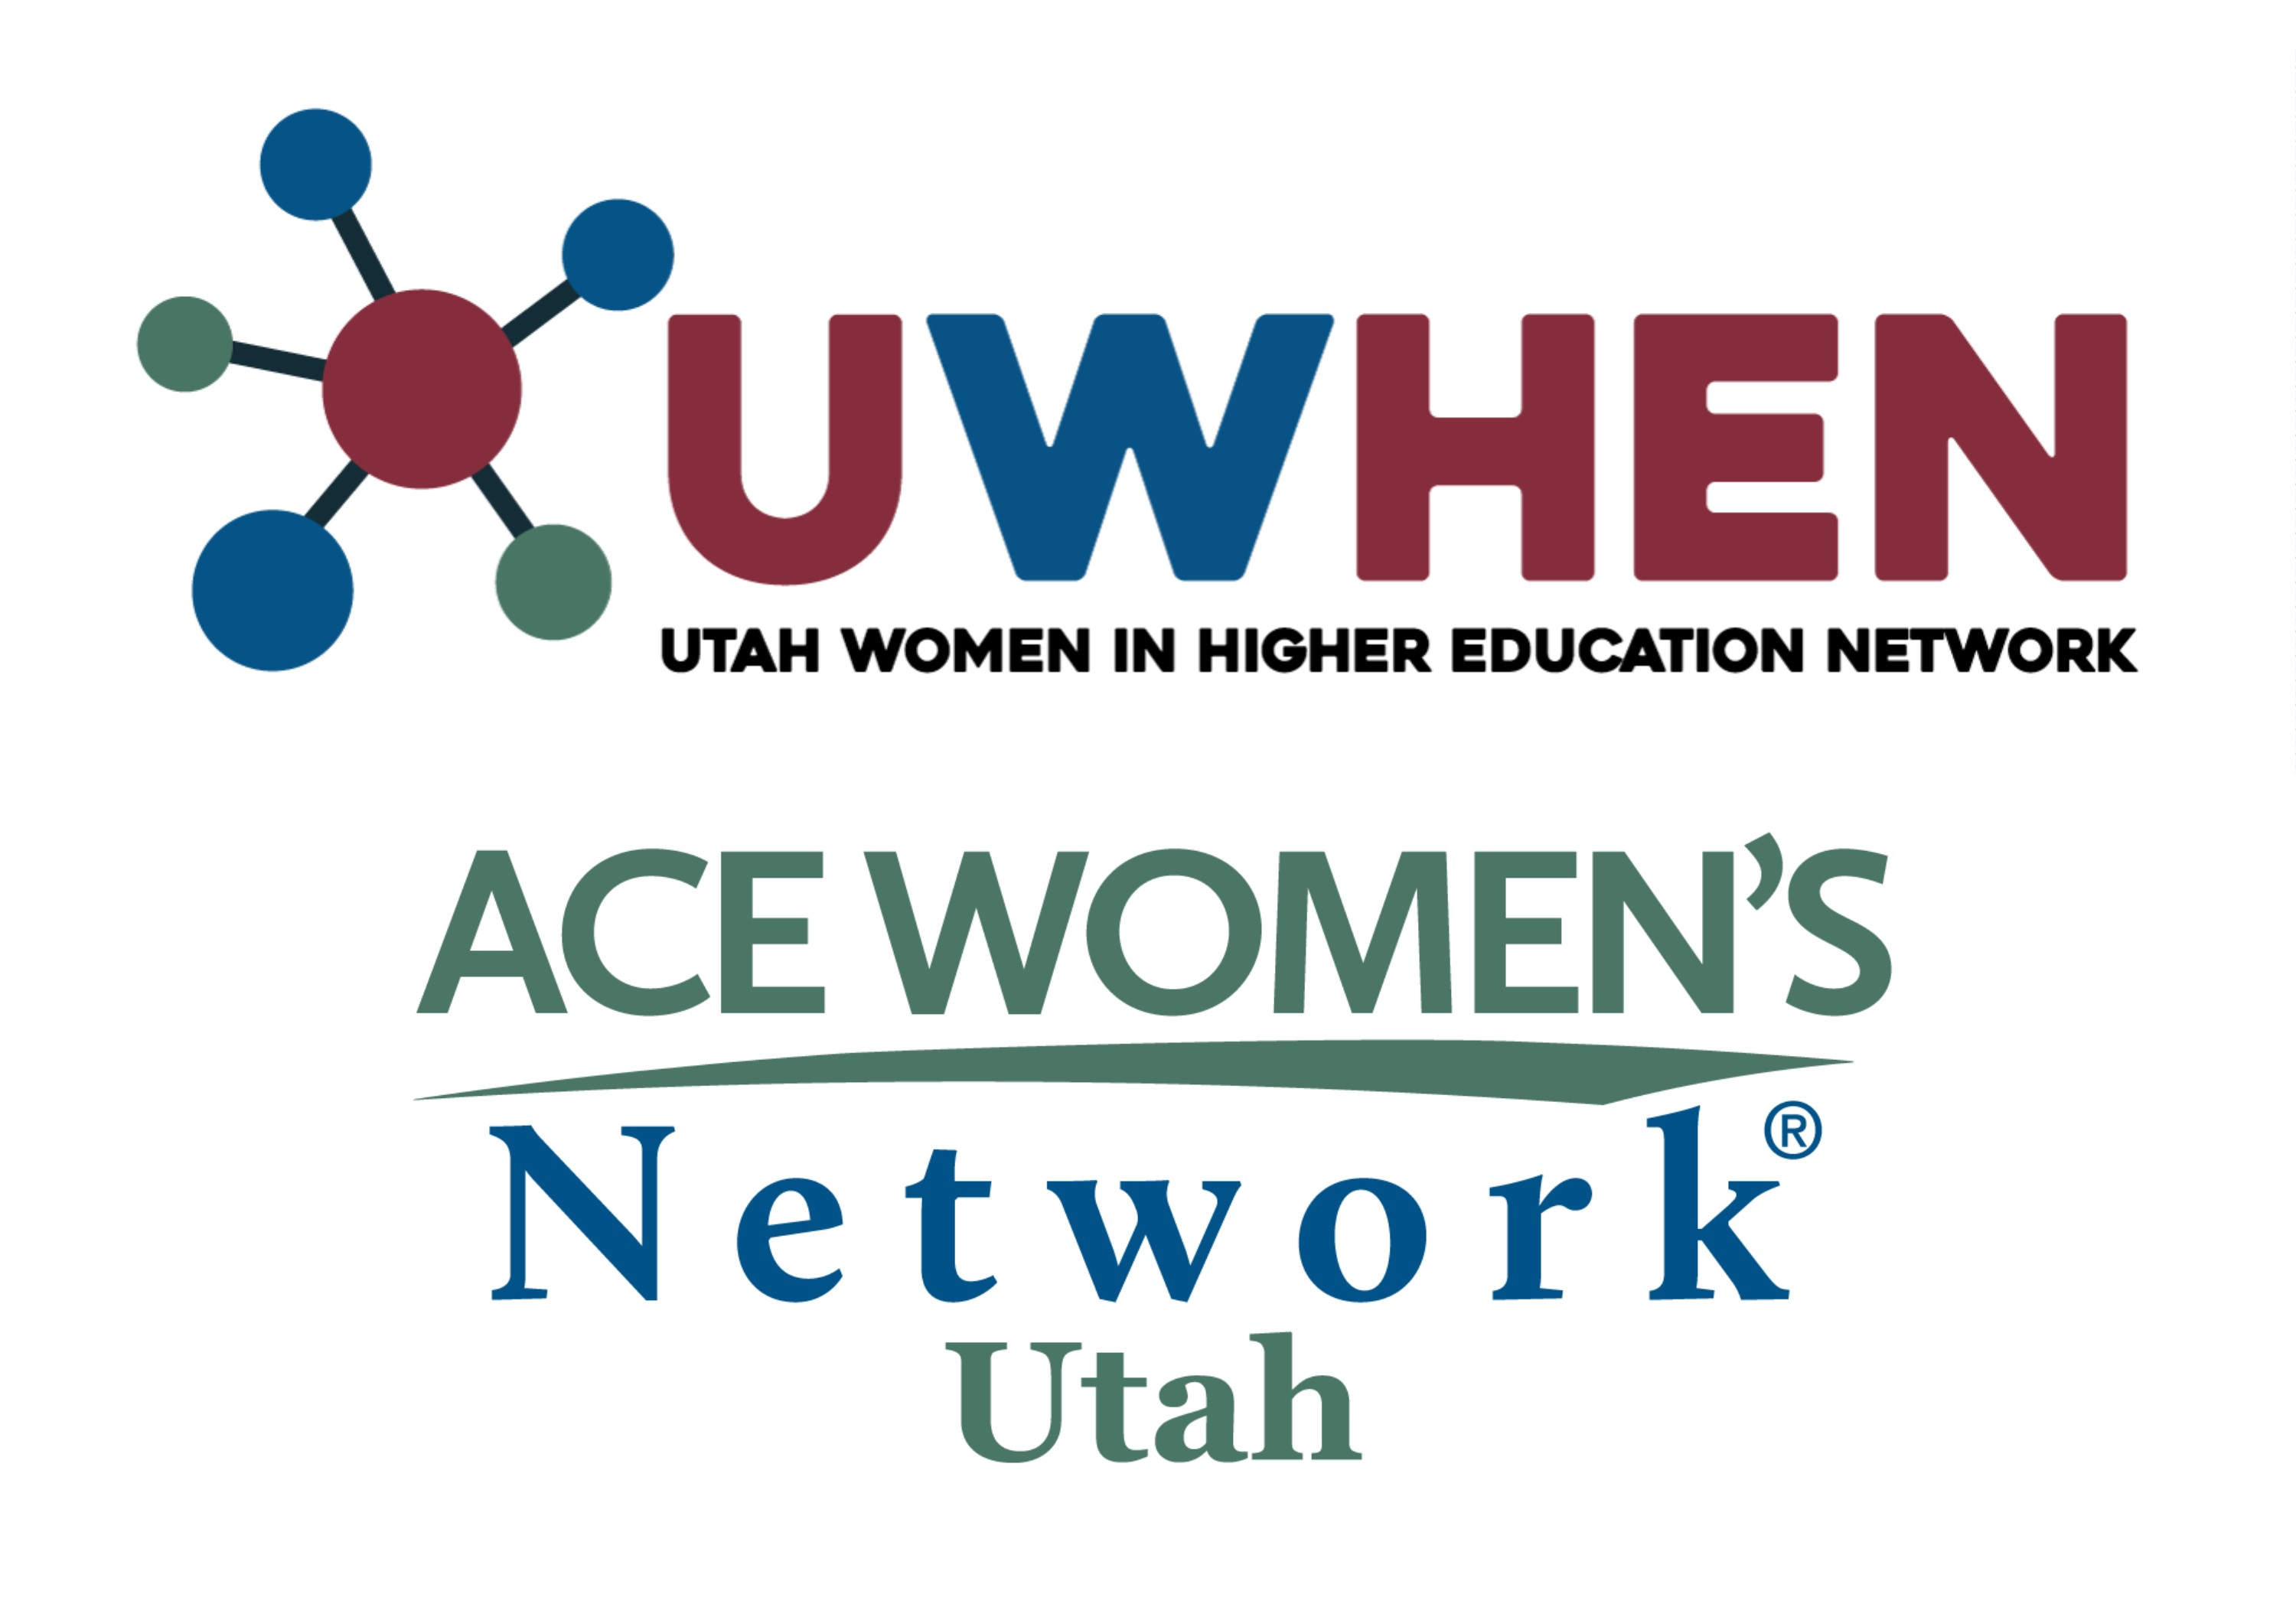 UWHEN - ACE Women's Network (Utah)